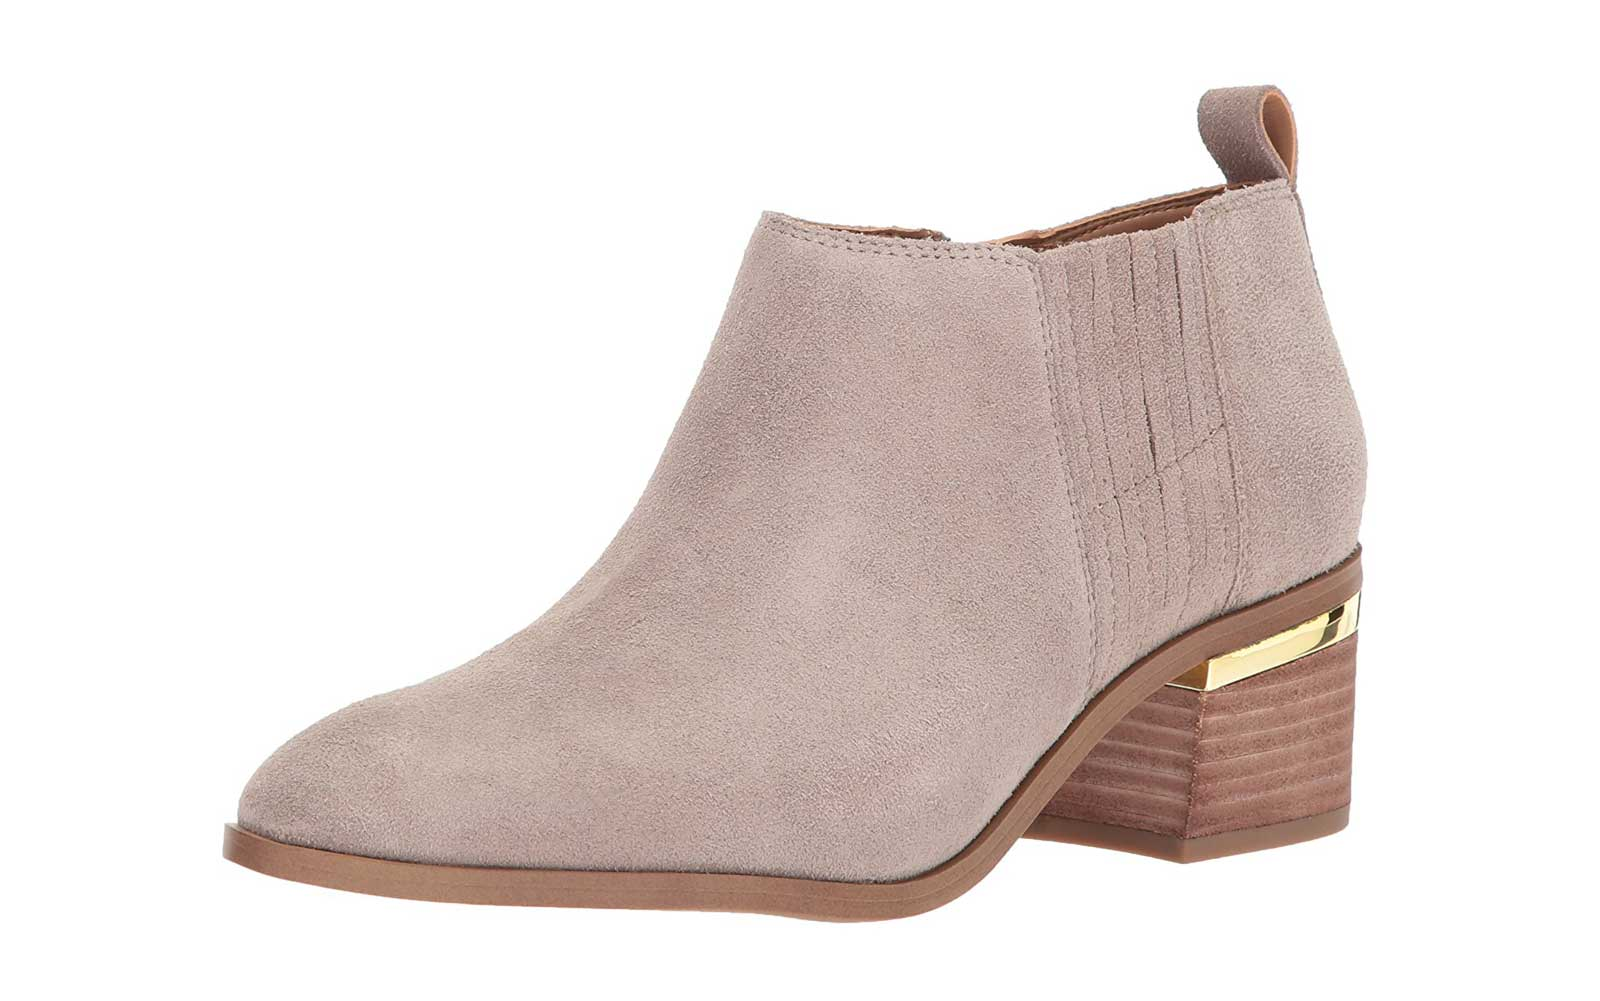 Heeled Booties With a Metallic Touch